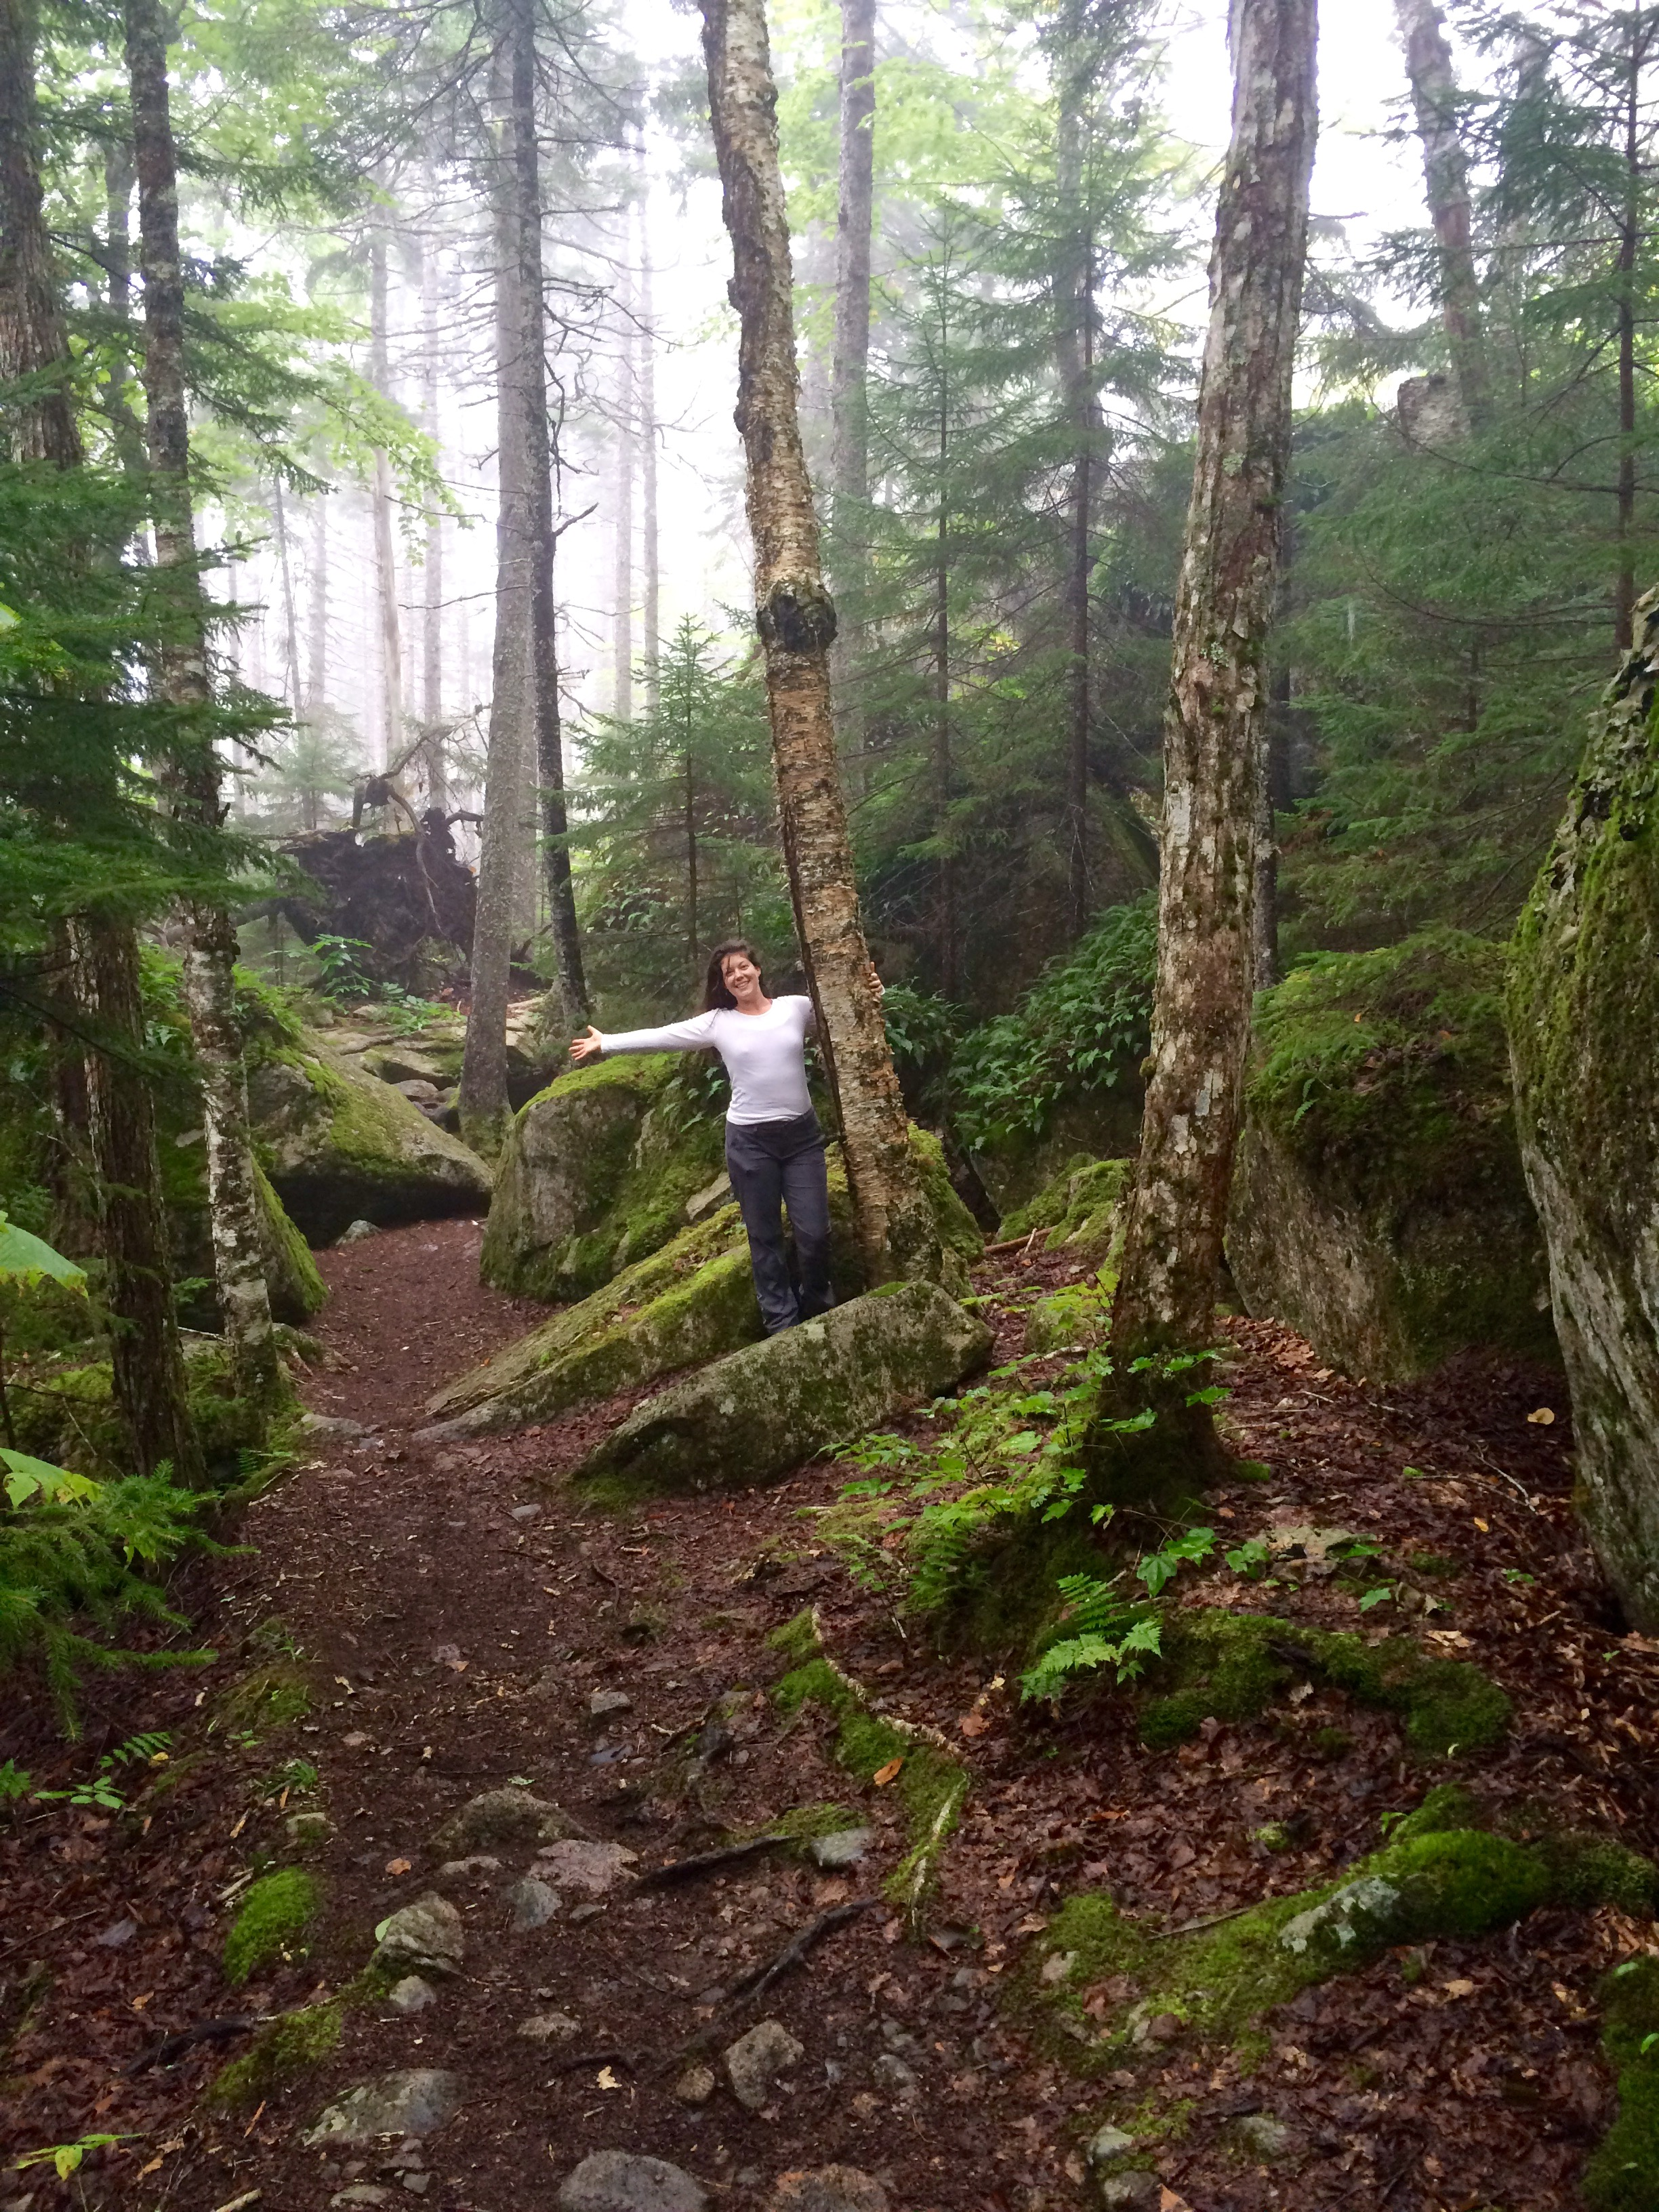 Yoga in the Forest! - With Erin Kelly7AM Tuesdays & Wednesdays8:30AM ThursdaysErin is in her element teaching in Nature. Each morning will be unique and tailored to the needs of those who show up… Enjoy Being in Nature while treating your self to a Feel-Good, therapeutic yoga session.